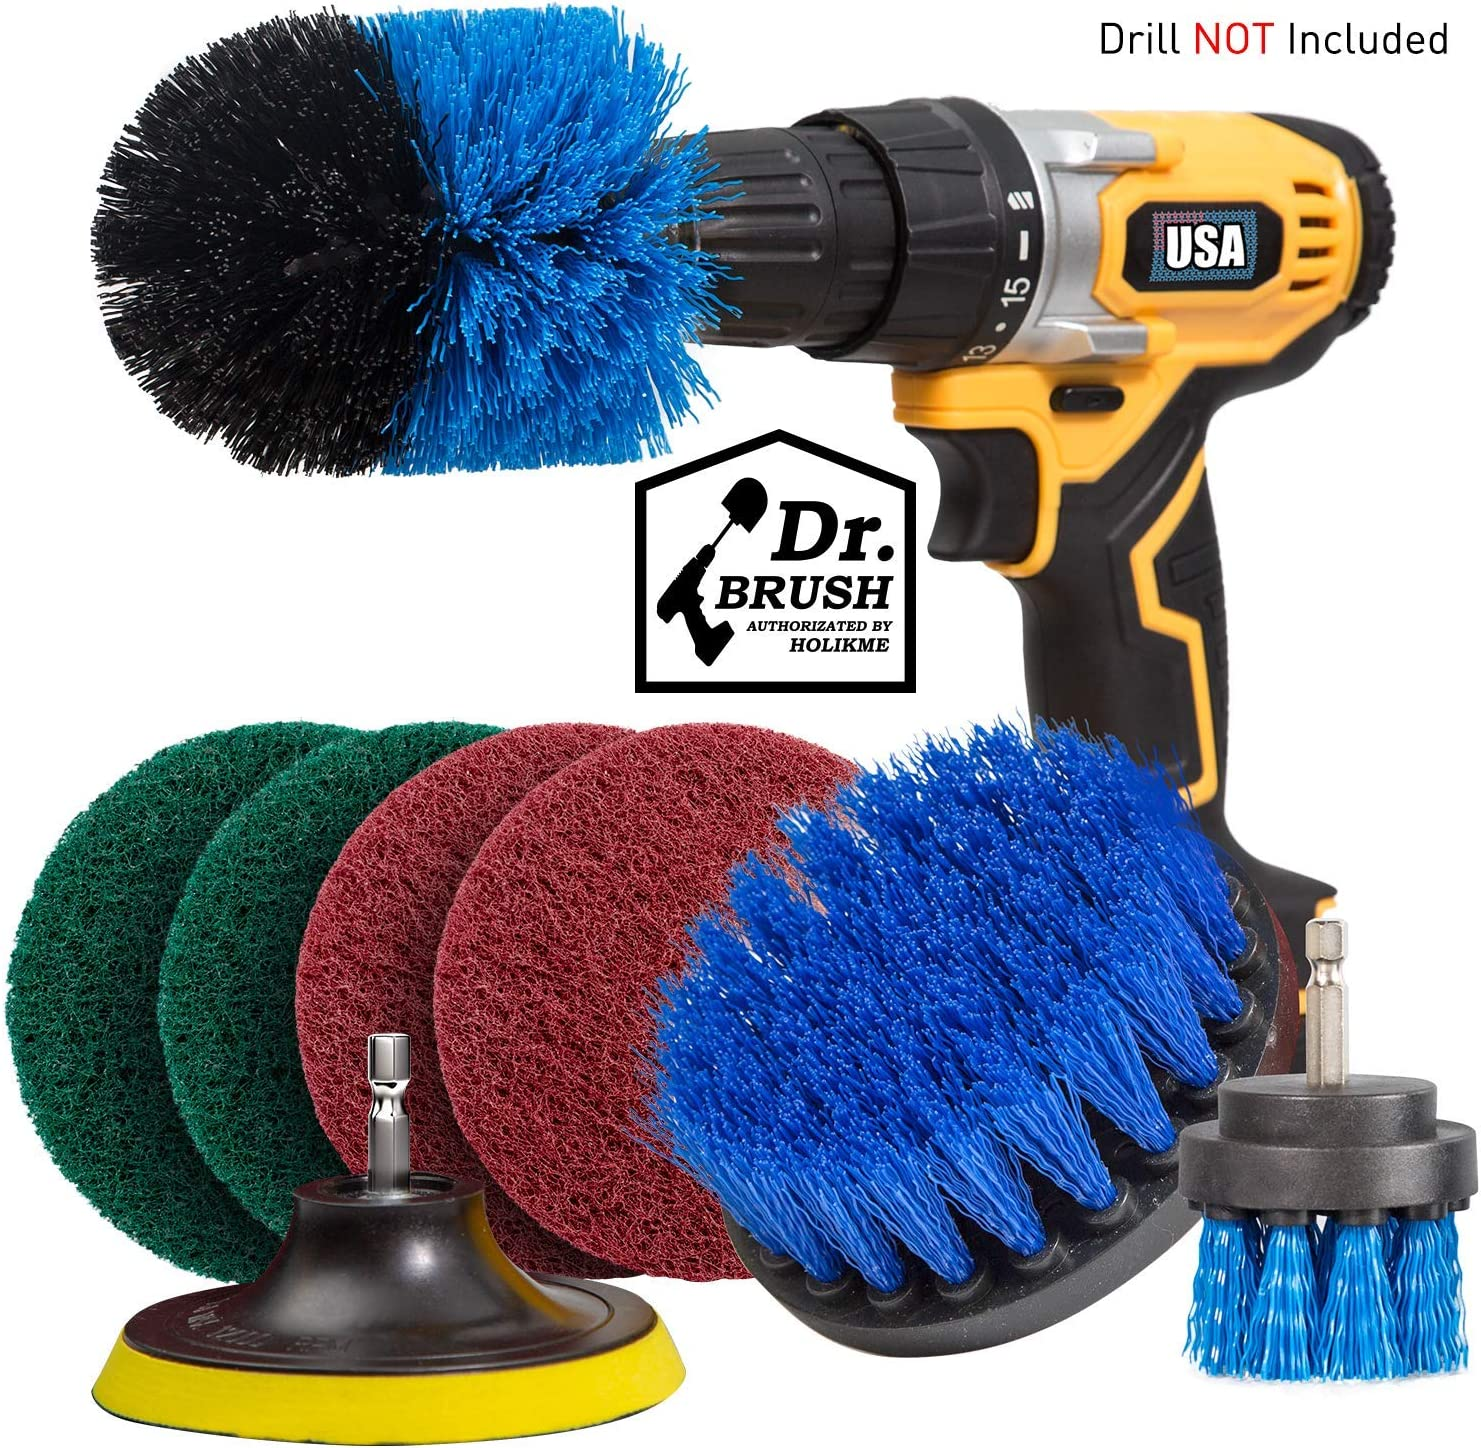 8 Piece Drill Brush Attachment Set Scouring Pads Power Scrubber Brush Scrub Pads Cleaning Kit - All Purpose for Bathroom Surfaces, Grout, Floor, Tub, Shower, Tile, Corners, Kitchen Cooktop, Pots